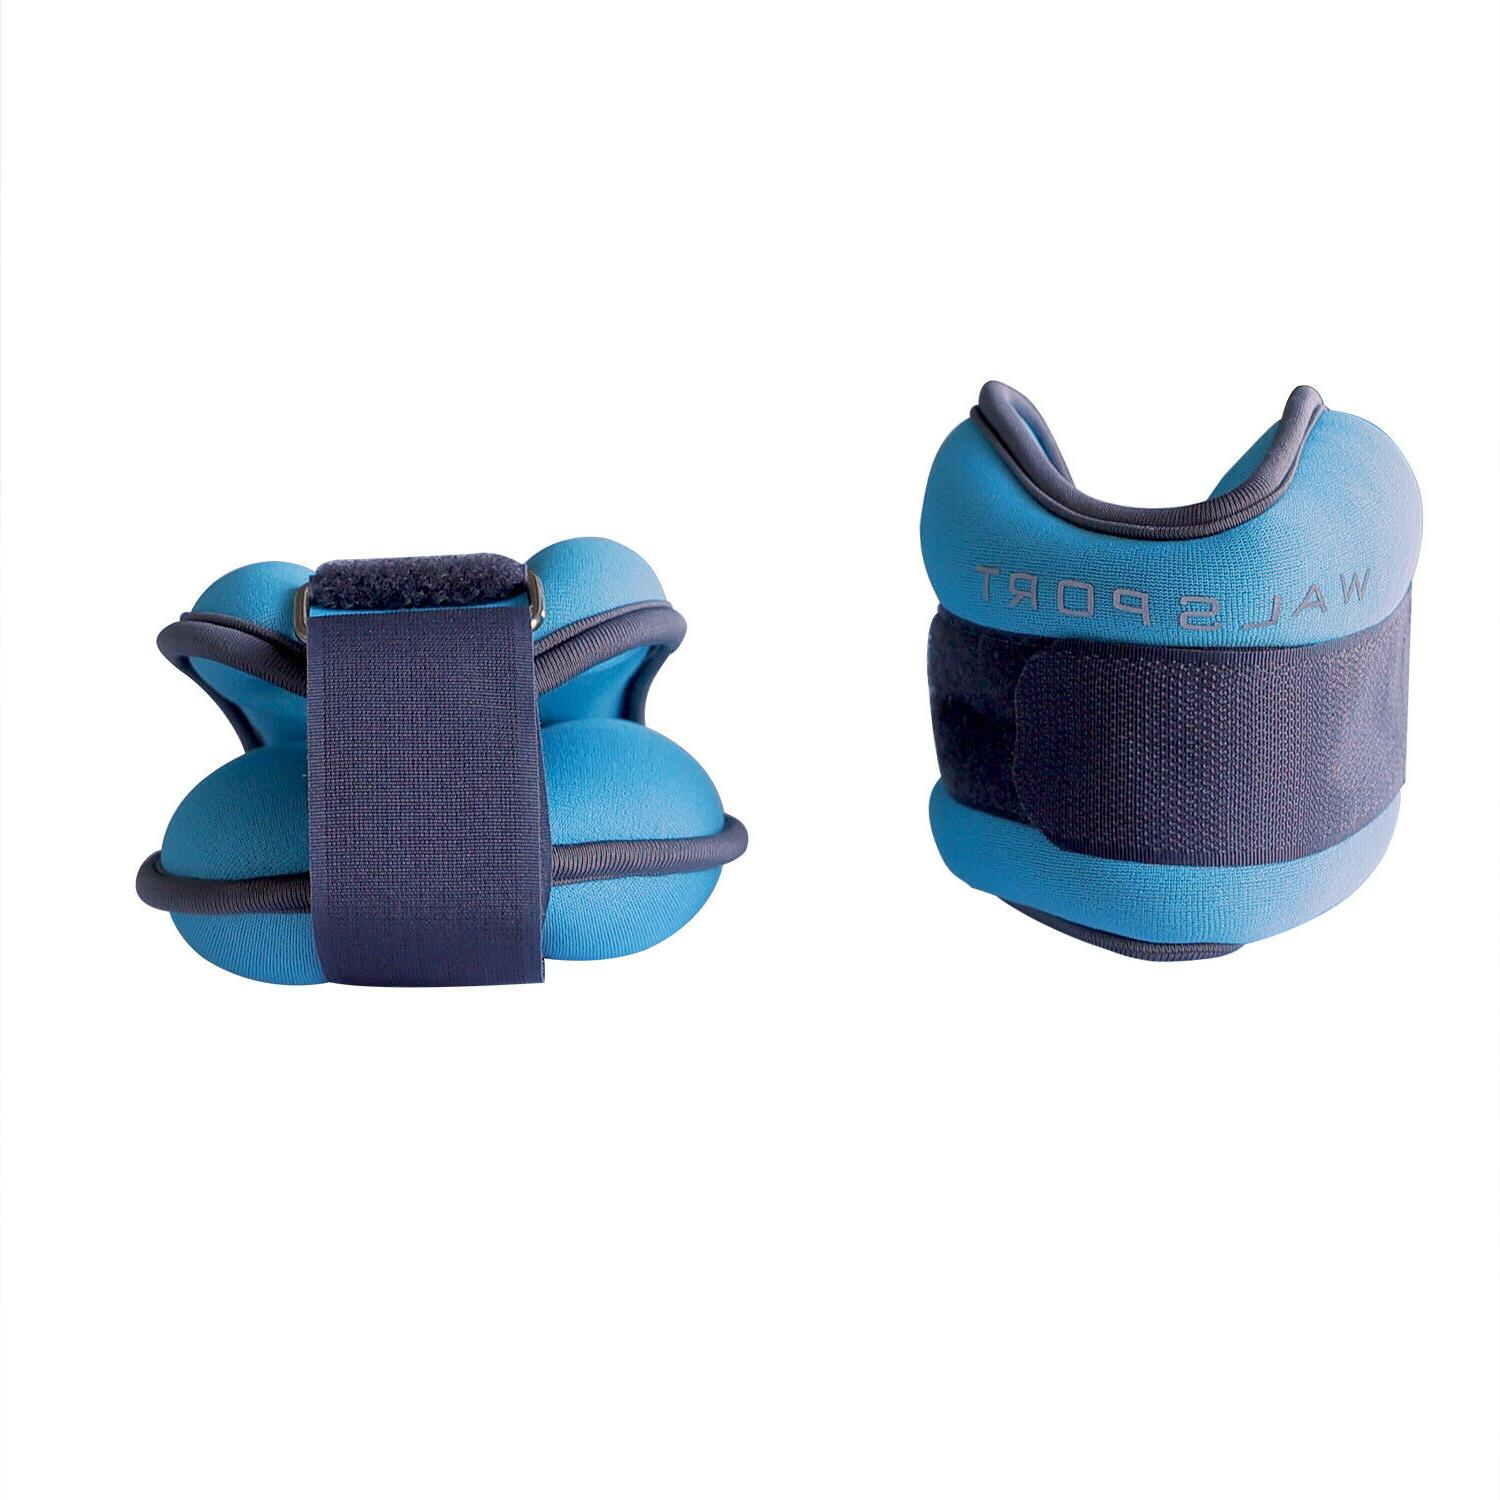 Wrist Weights Fitness Leg Exercise